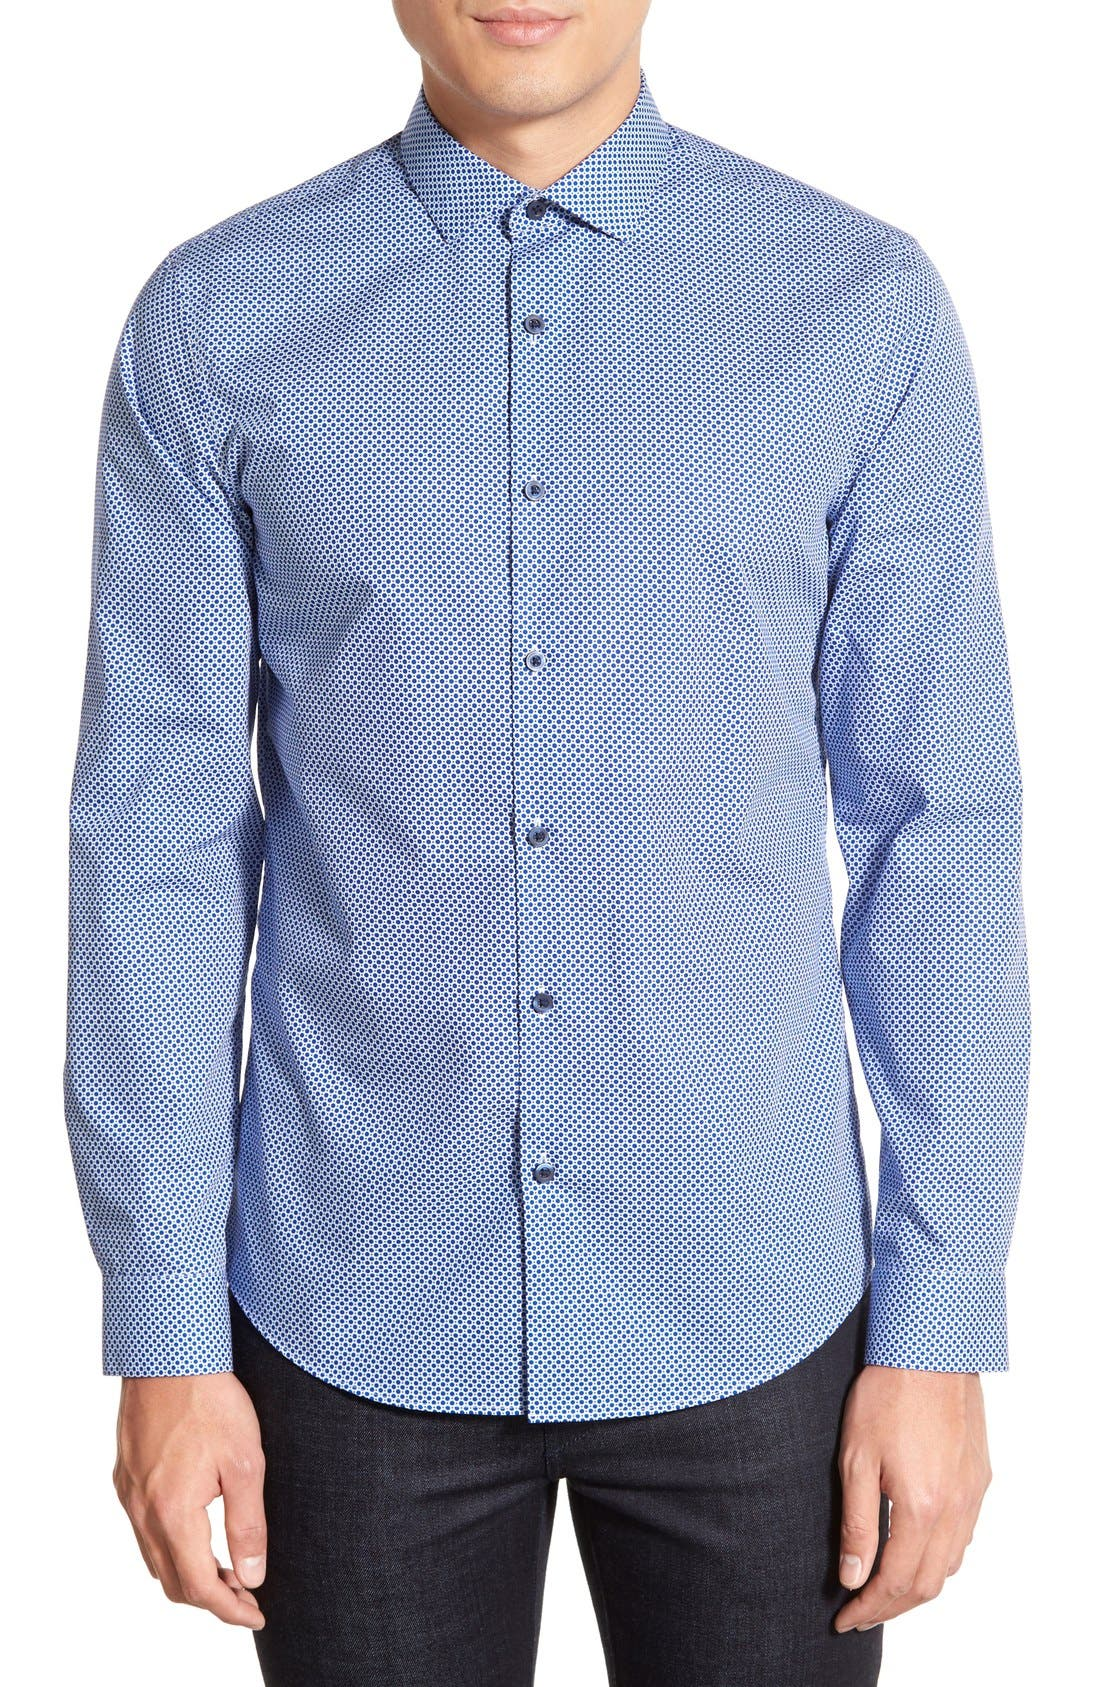 CALIBRATE Slim Fit Dot Print Sport Shirt